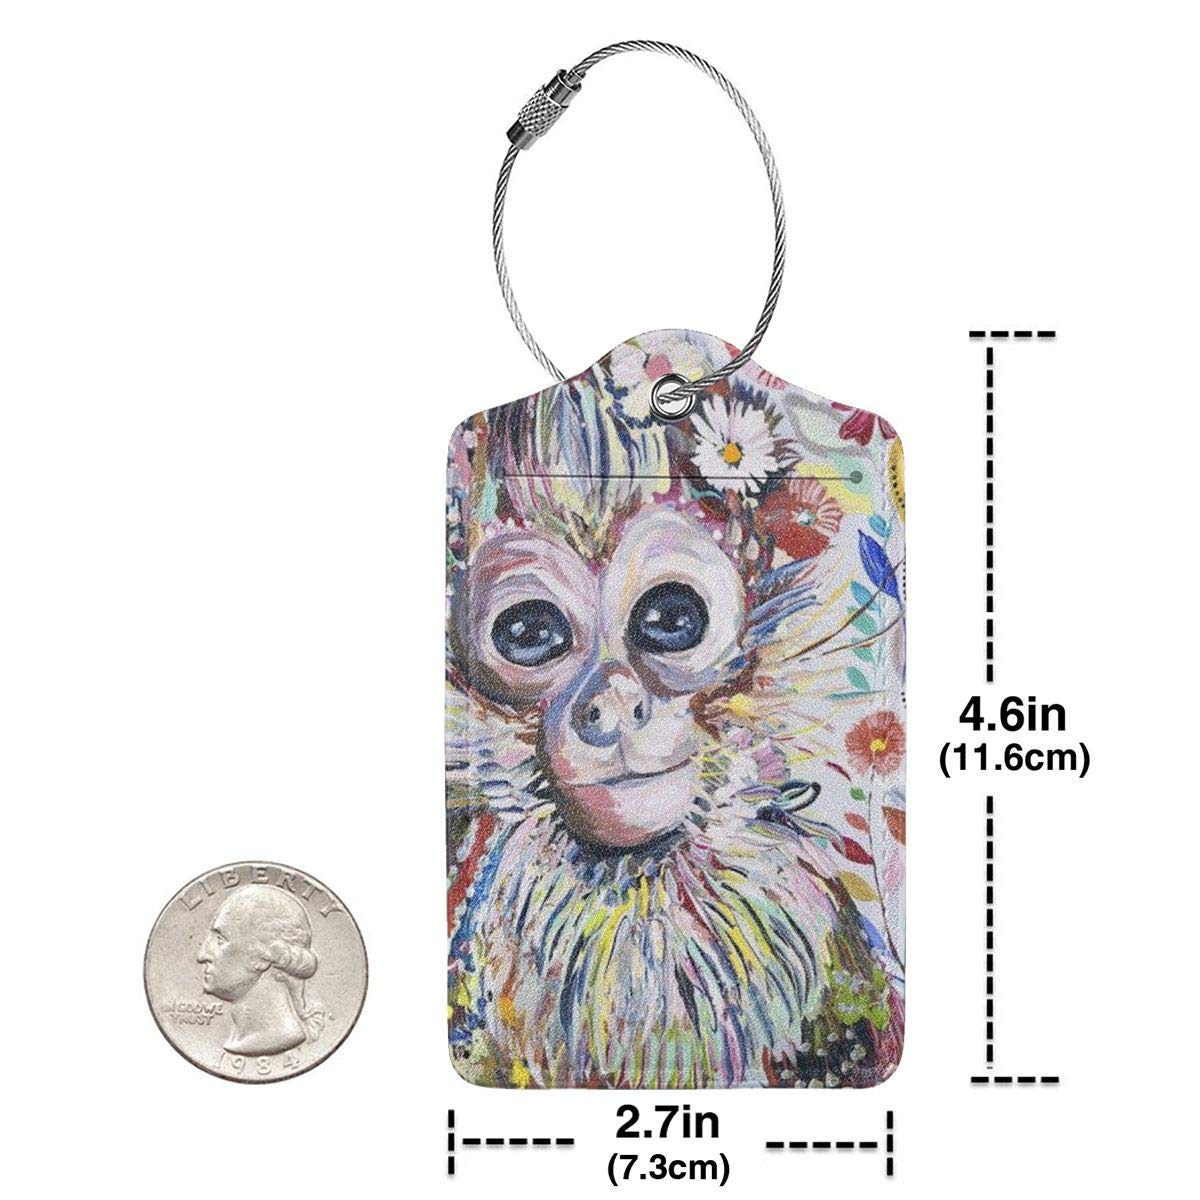 Colorful Animal Monkey Luggage Tag Label Travel Bag Label With Privacy Cover Luggage Tag Leather Personalized Suitcase Tag Travel Accessories